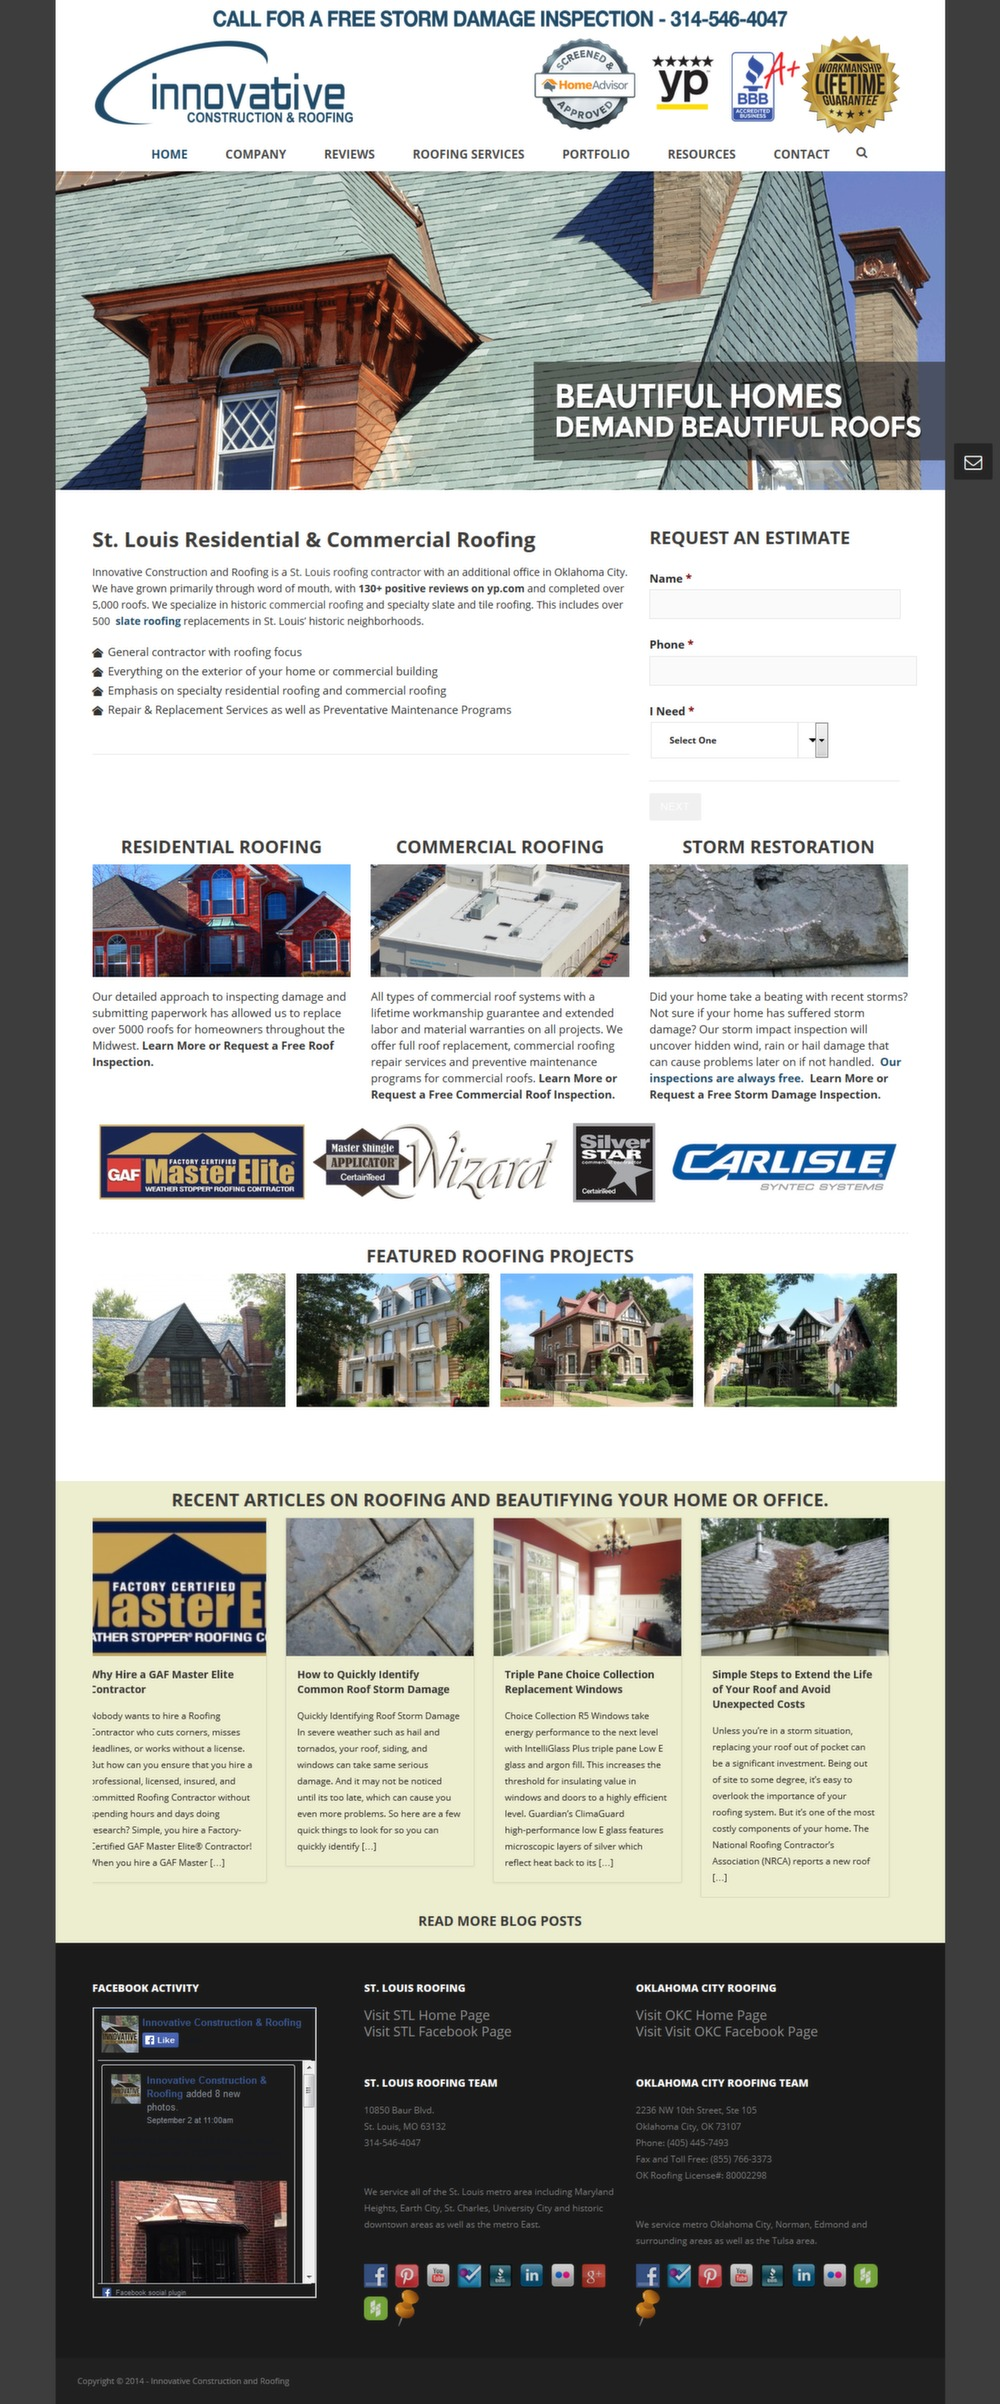 Innovative Roofs - Successfully Delivered Projects On-Time and On-Budget. Improved Website Conversation Rate By 80% Against Existing Control.